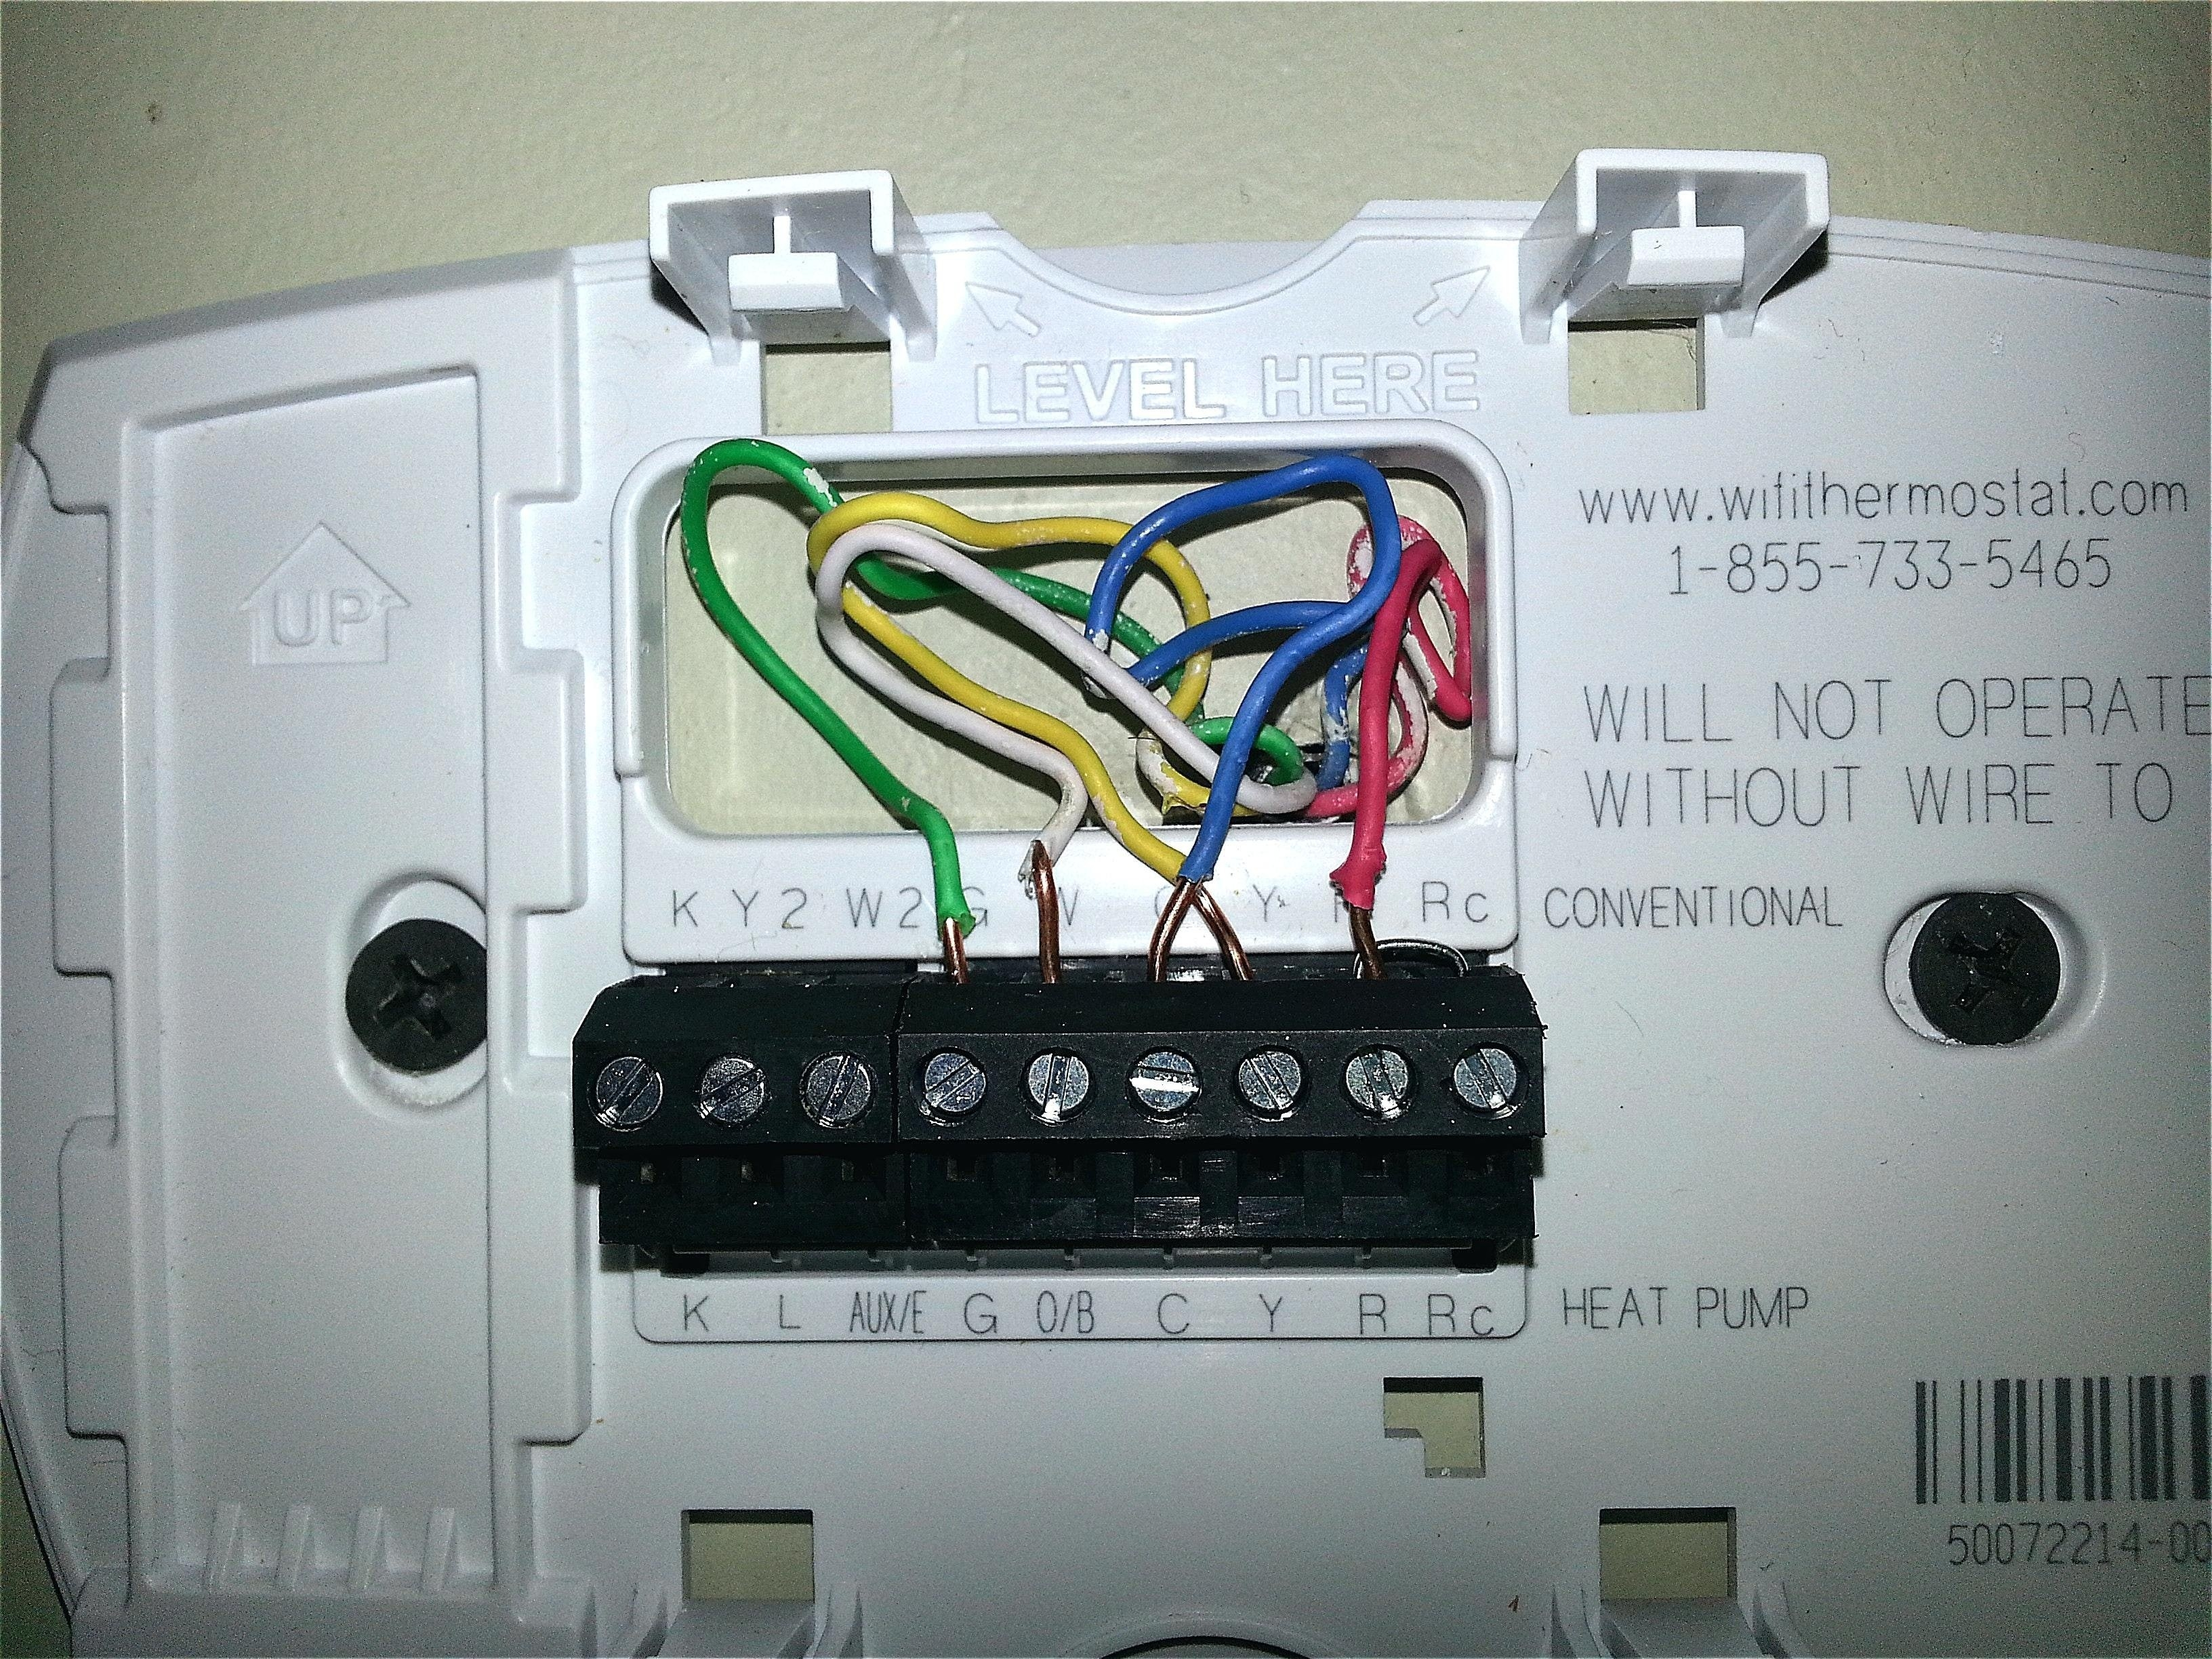 honeywell rth2300 rth221 wiring diagram Download-Wiring Diagram for Honeywell thermostat Rth221 Refrence Well Pump Wire Cable Likewise Honeywell Ac thermostat Wiring 14-m